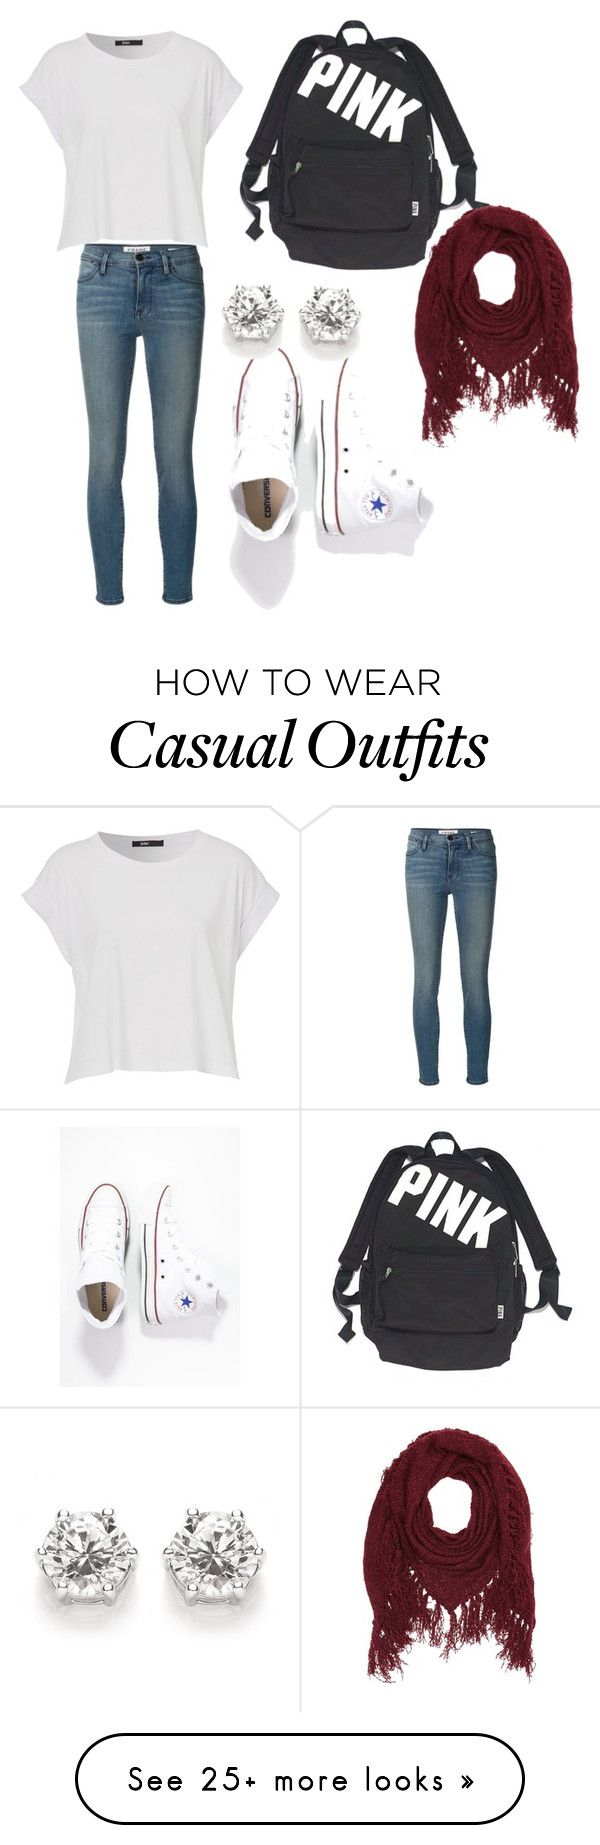 """""""School or casual outfit"""" by hankate15 on Polyvore featuring moda, Frame Denim, Converse, Victoria's Secret ve Charlotte Russe"""